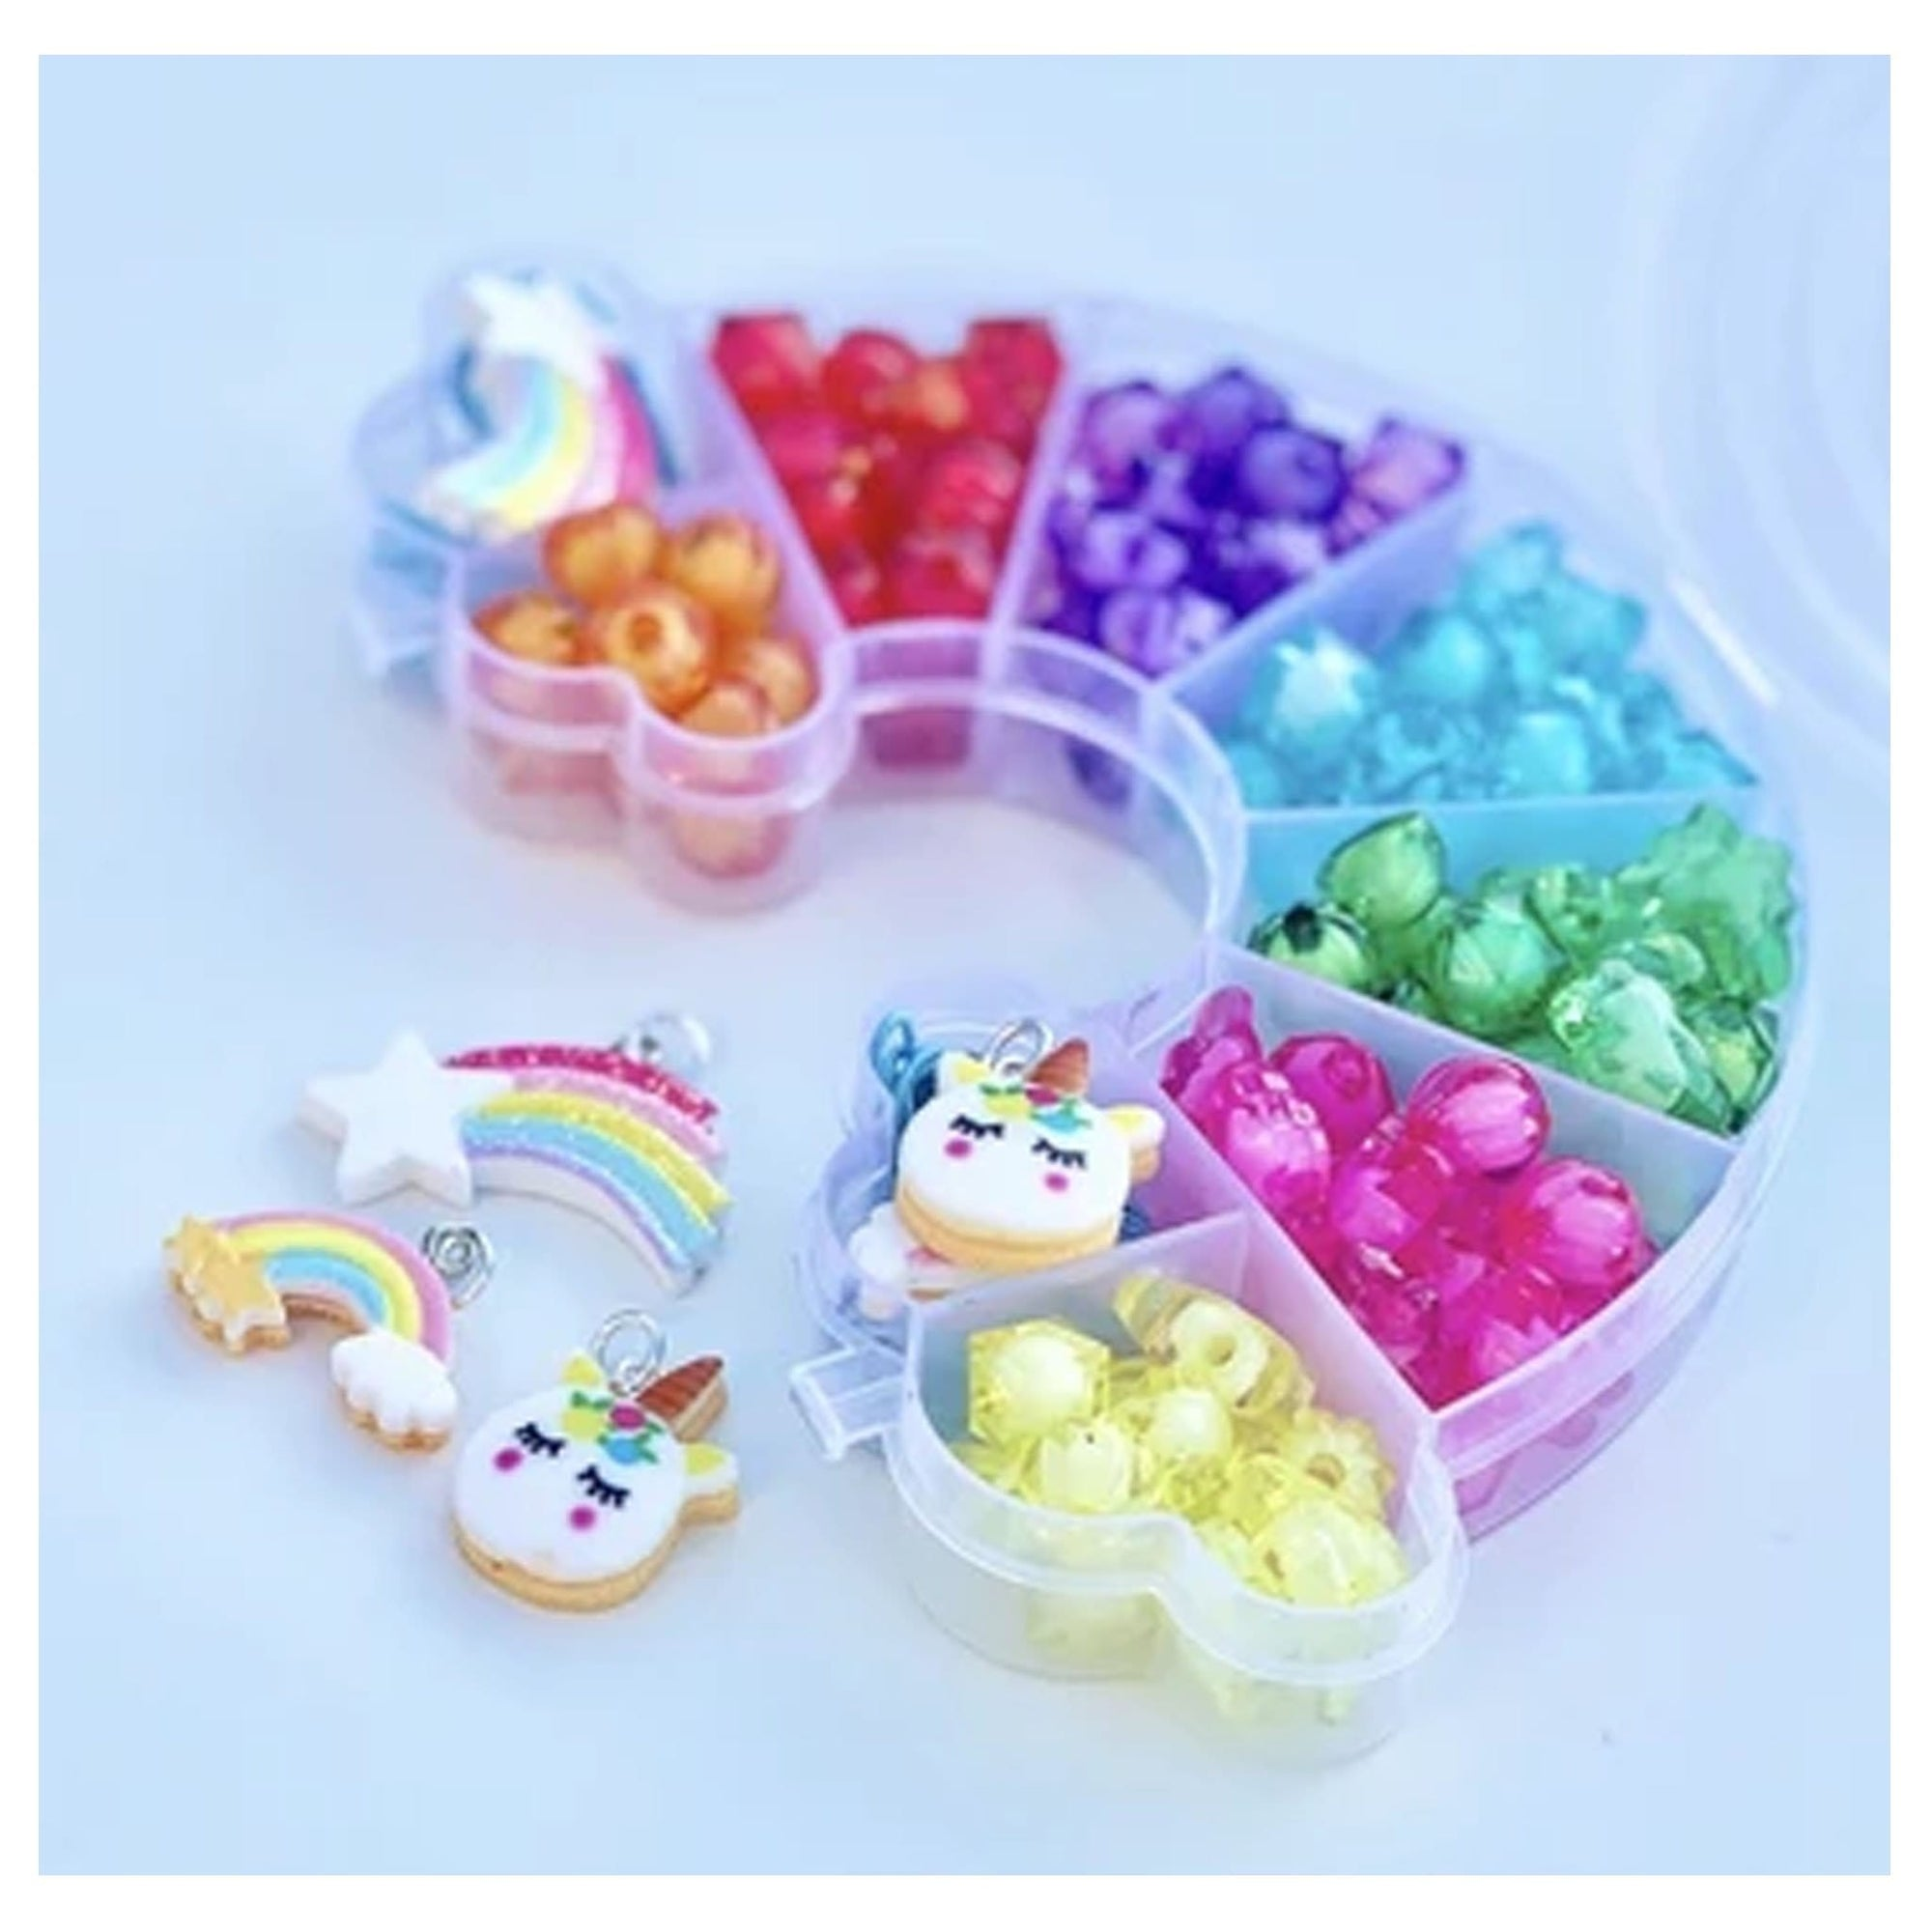 Sweet as Sugar Jellewery Rainbow DIY Bead Kit